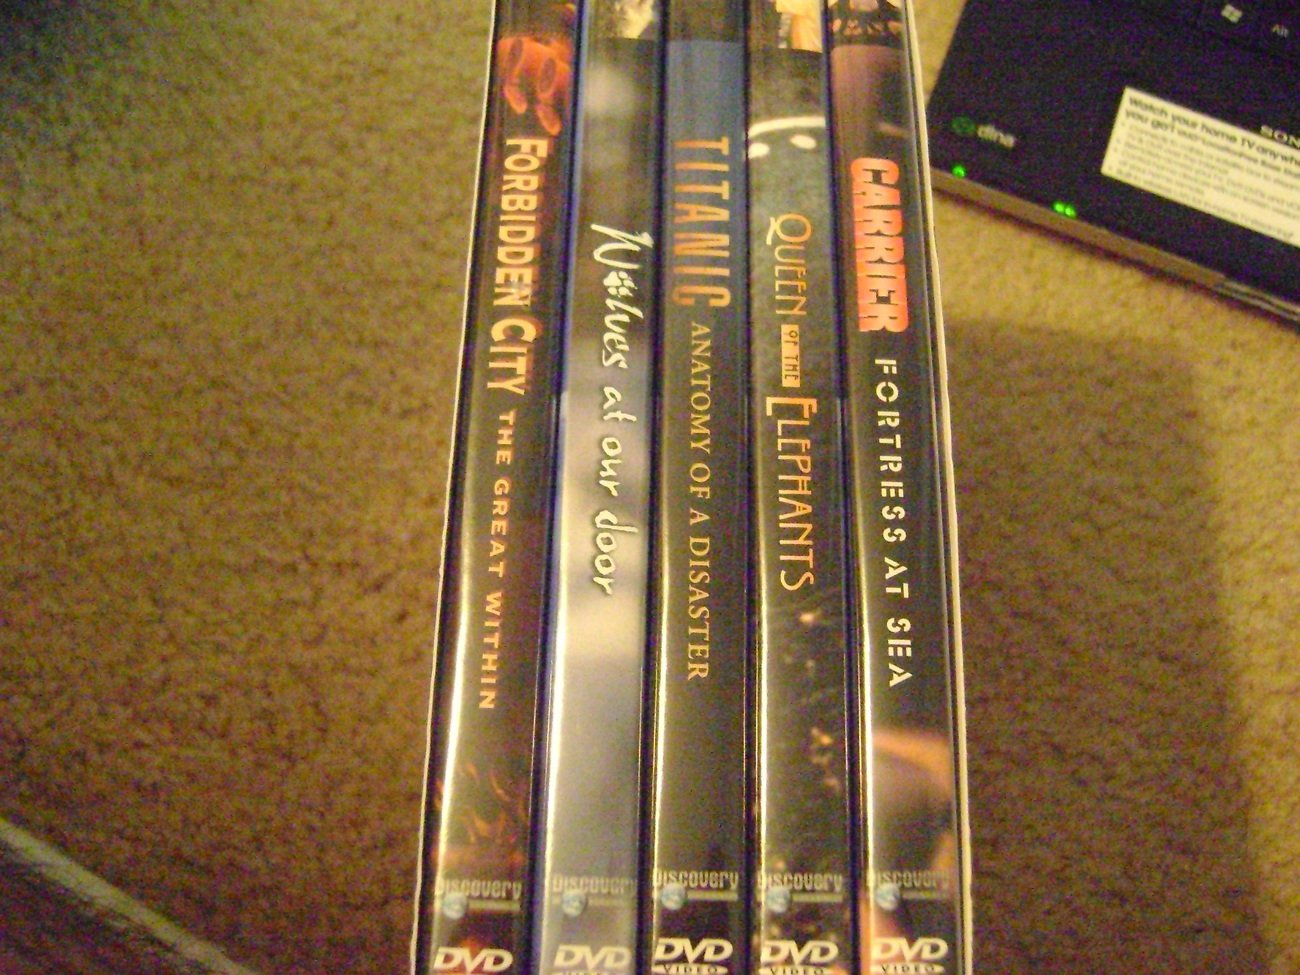 Discovery Channel DVD Set